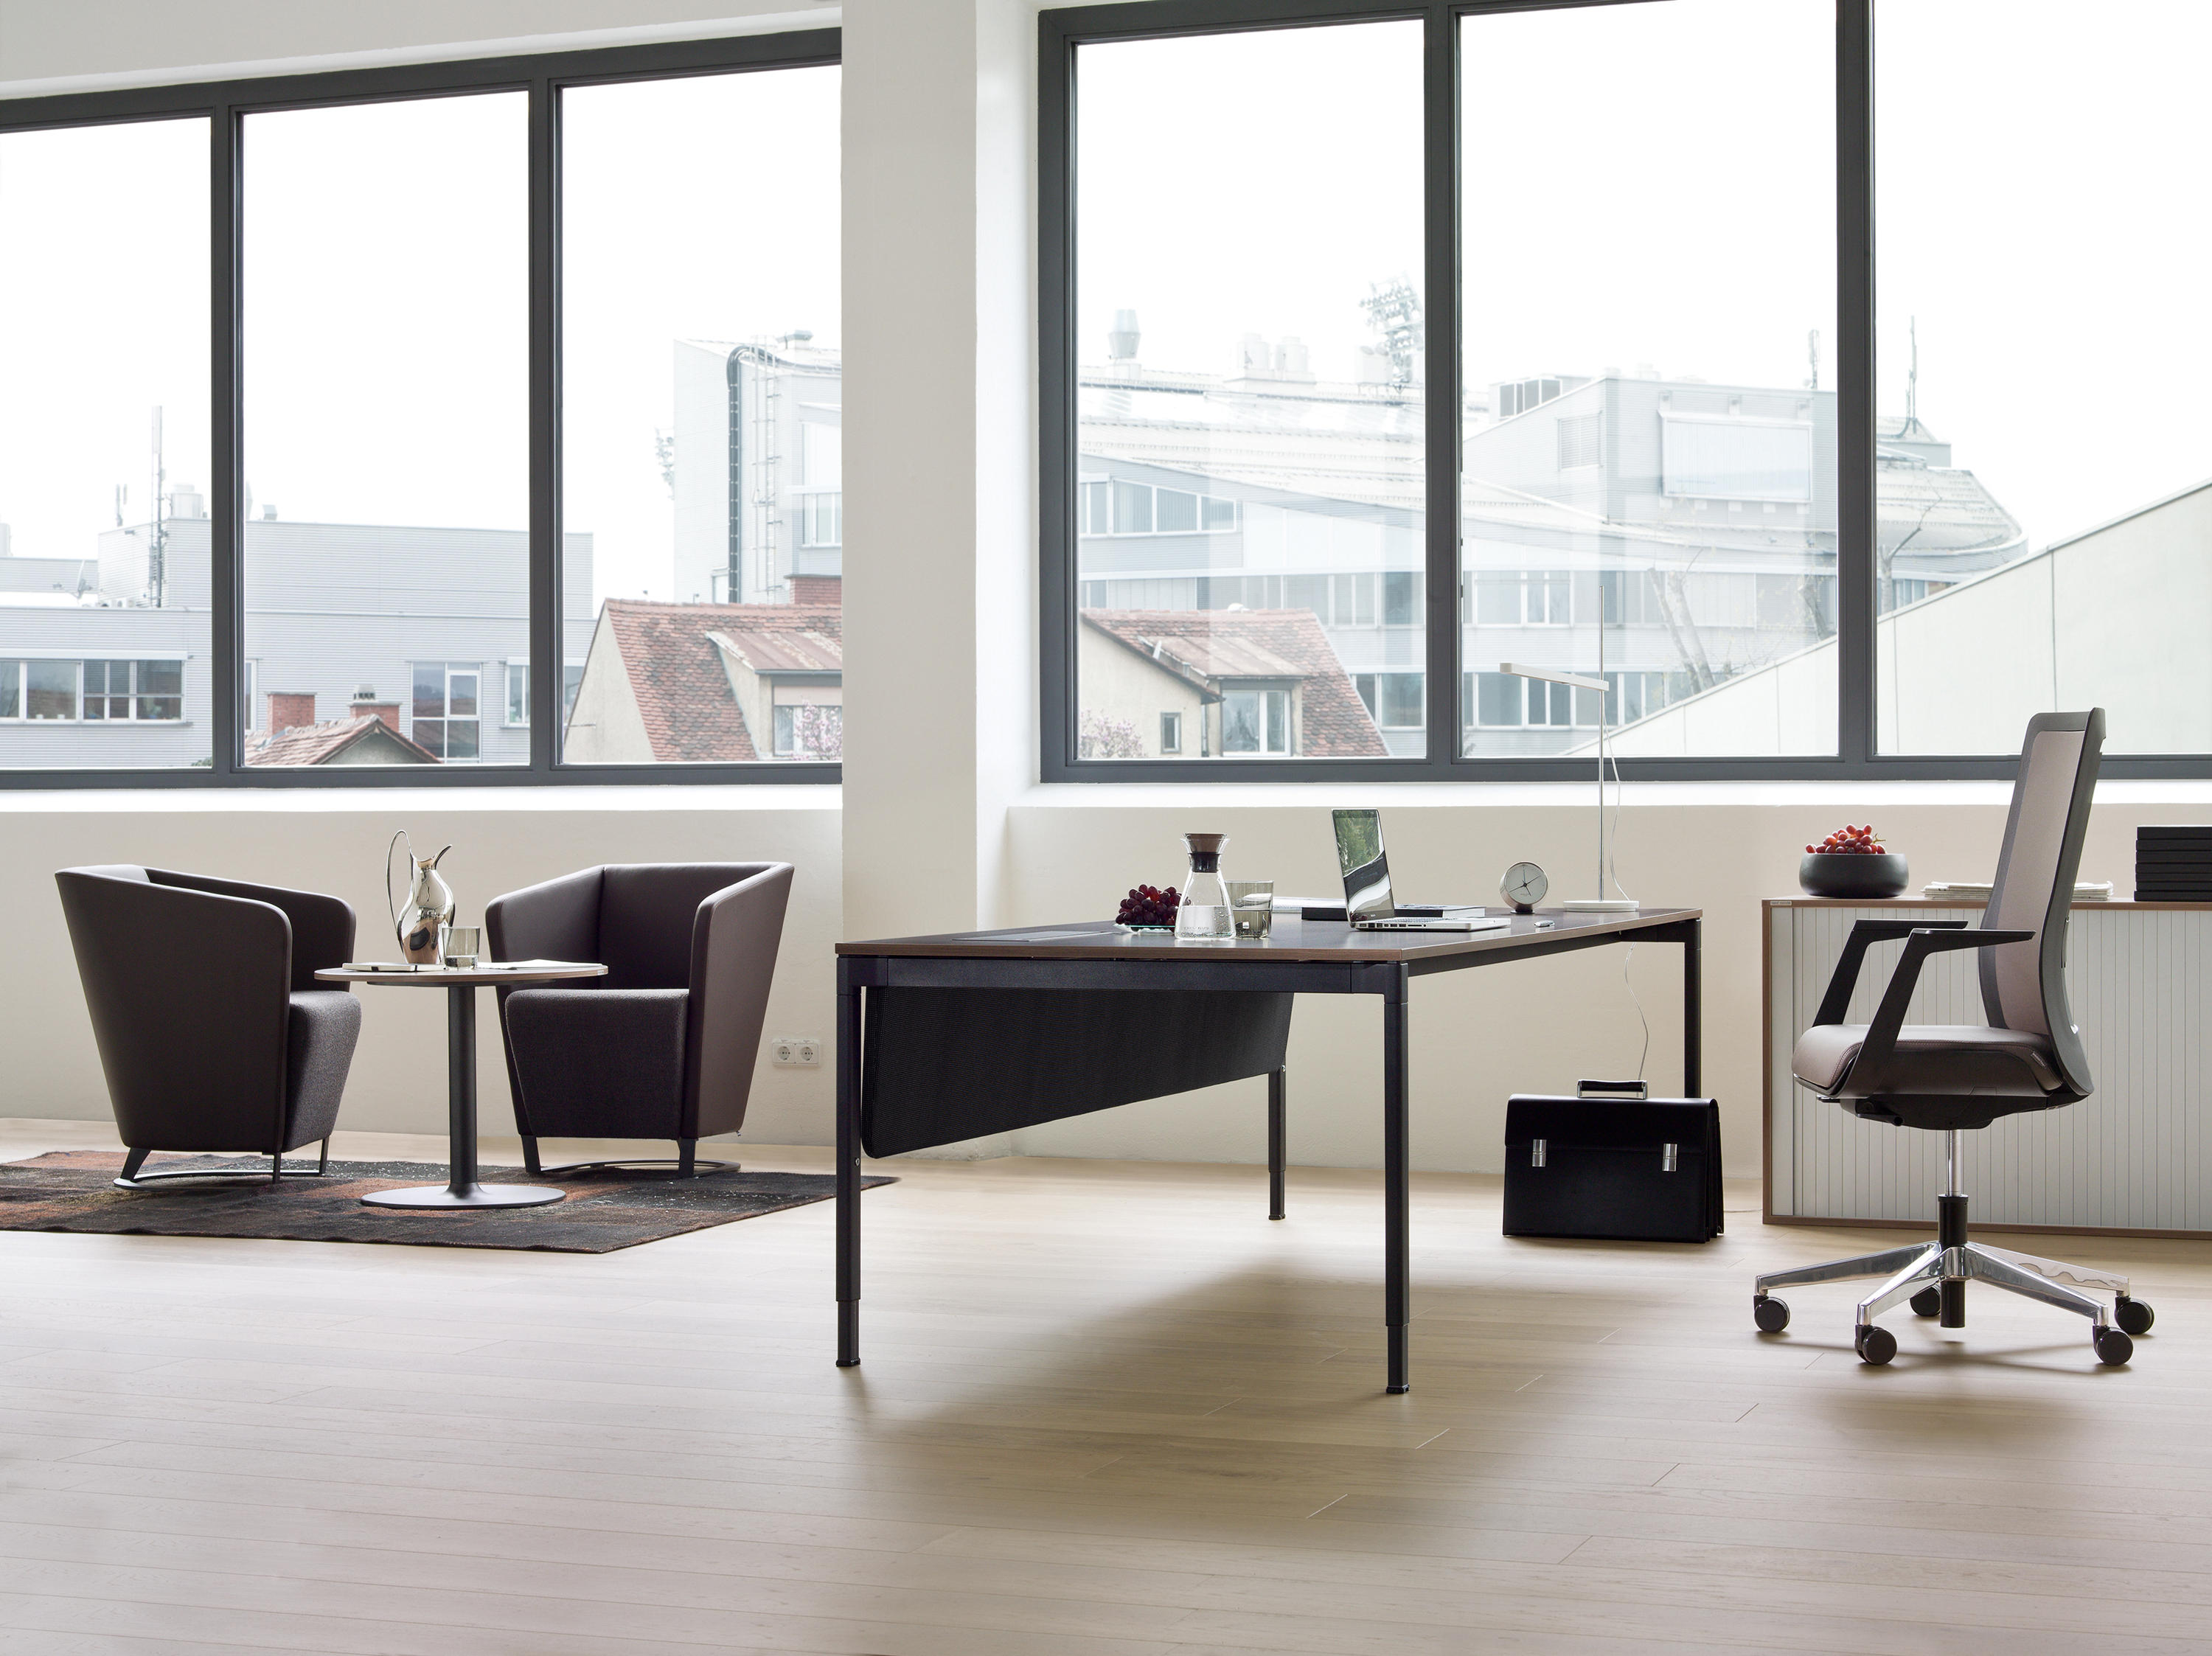 Wiesner Hager Büromöbel Veron Table Contract Tables From Wiesner Hager Architonic